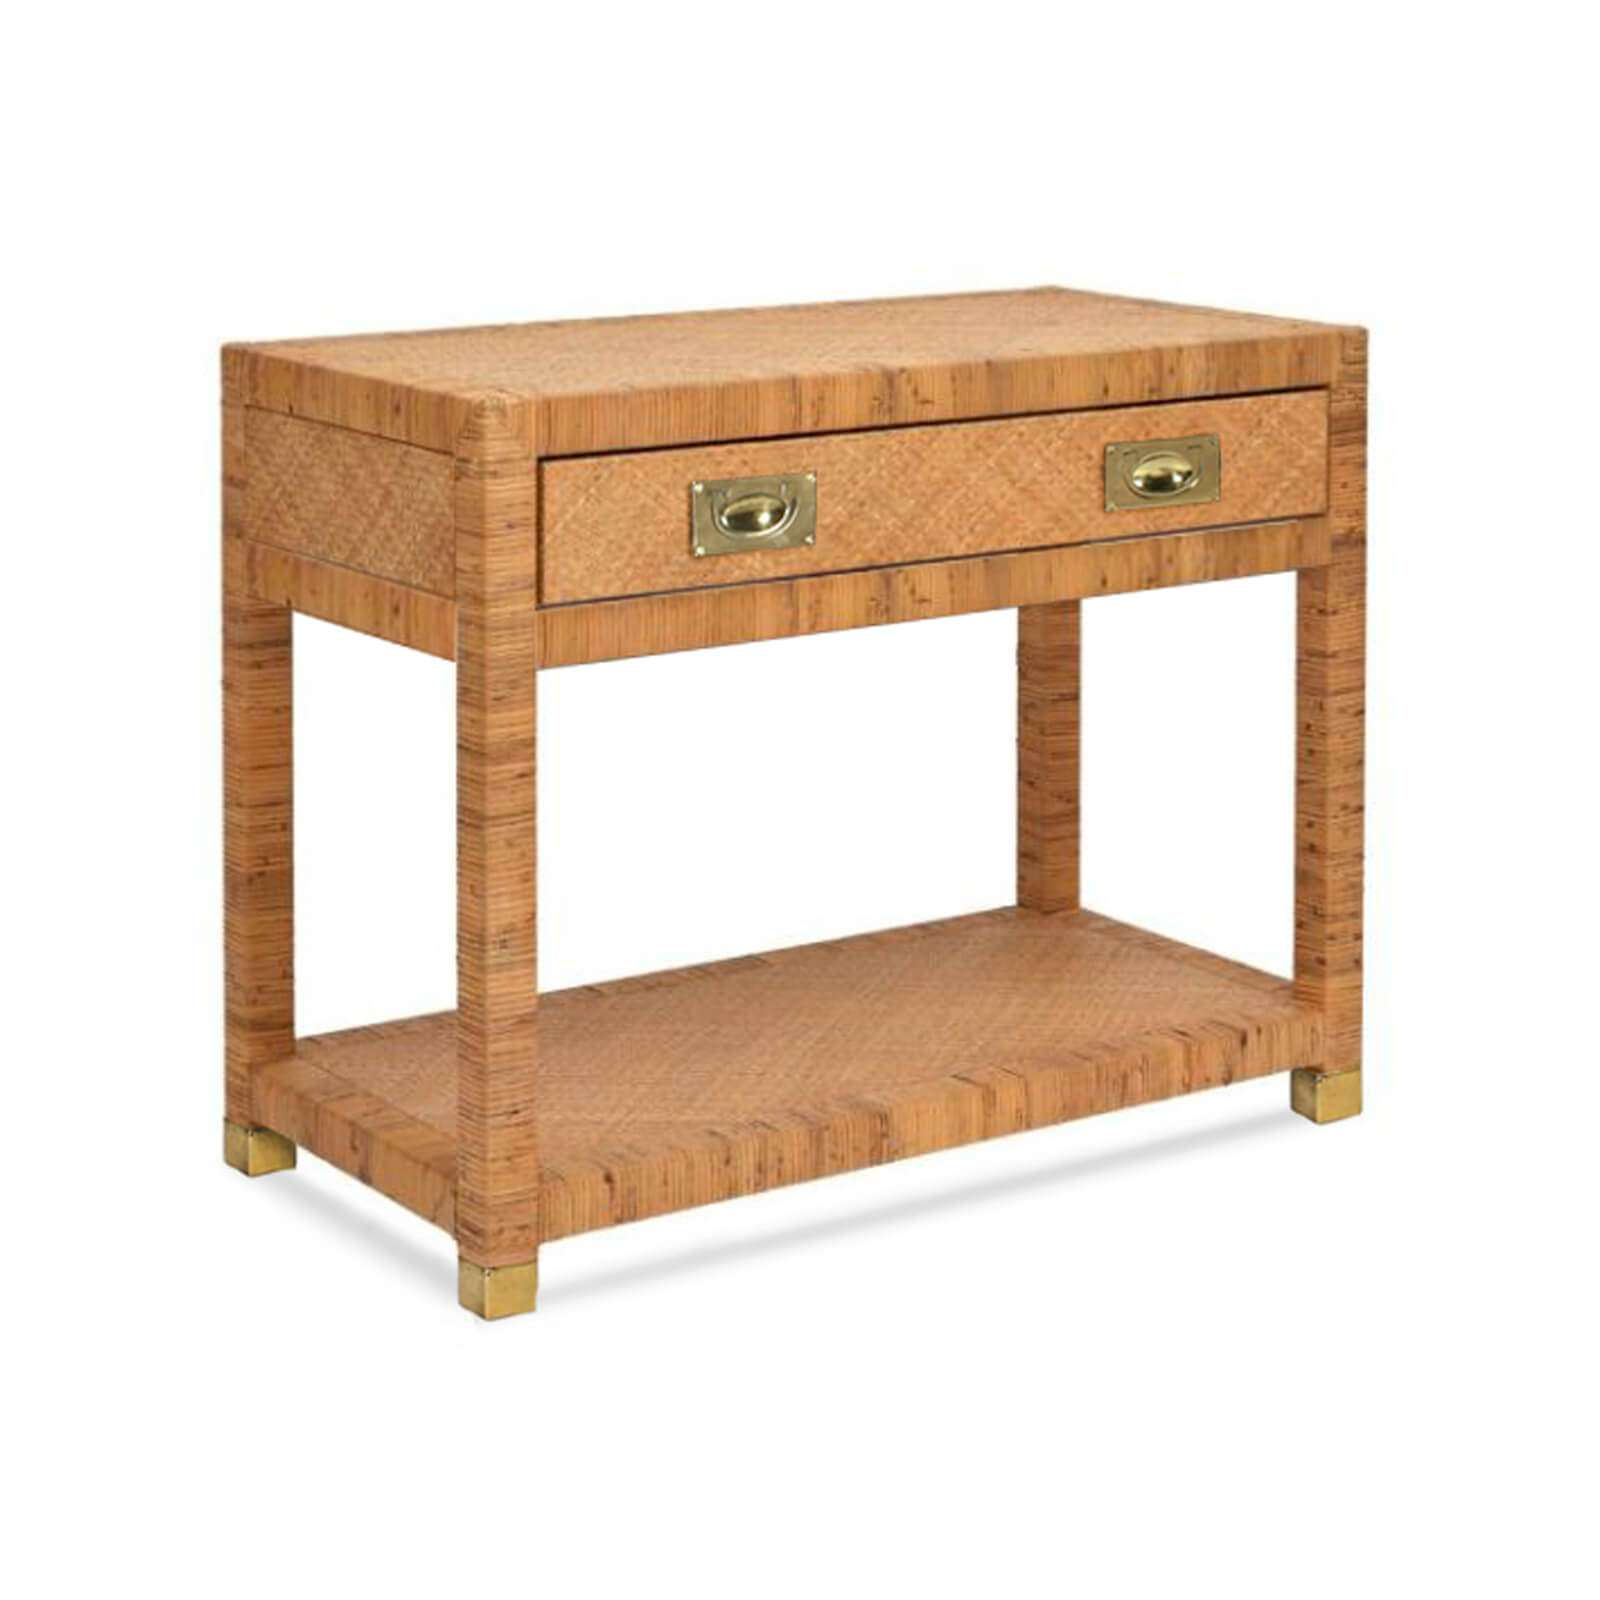 TB 536 INDIGO COAST BEDSIDE TABLE PERSPECTIVE (2) - STUART MEMBERY HOME COLLECTION